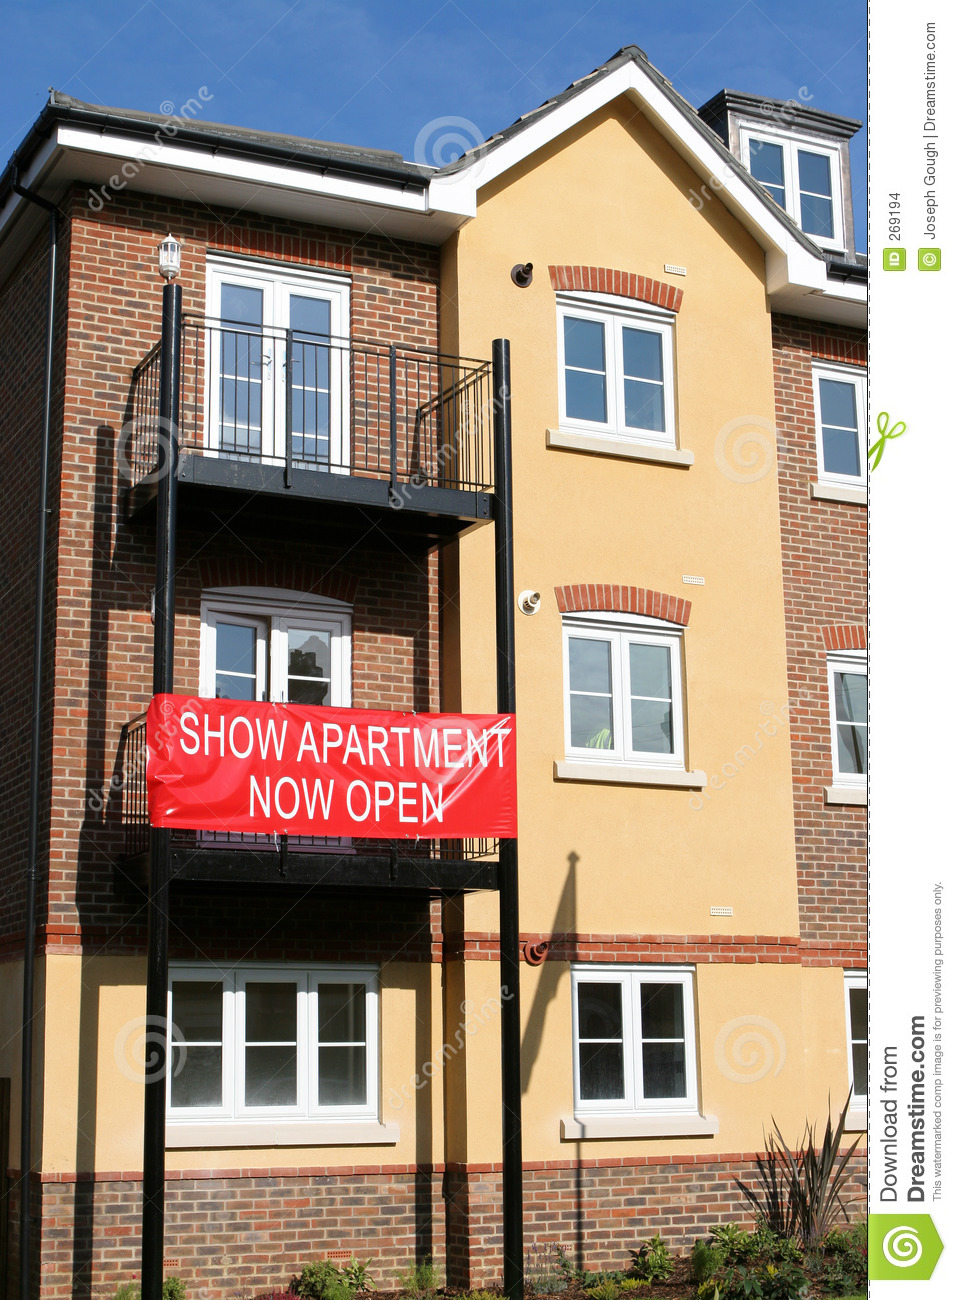 Show Apartment Now Open